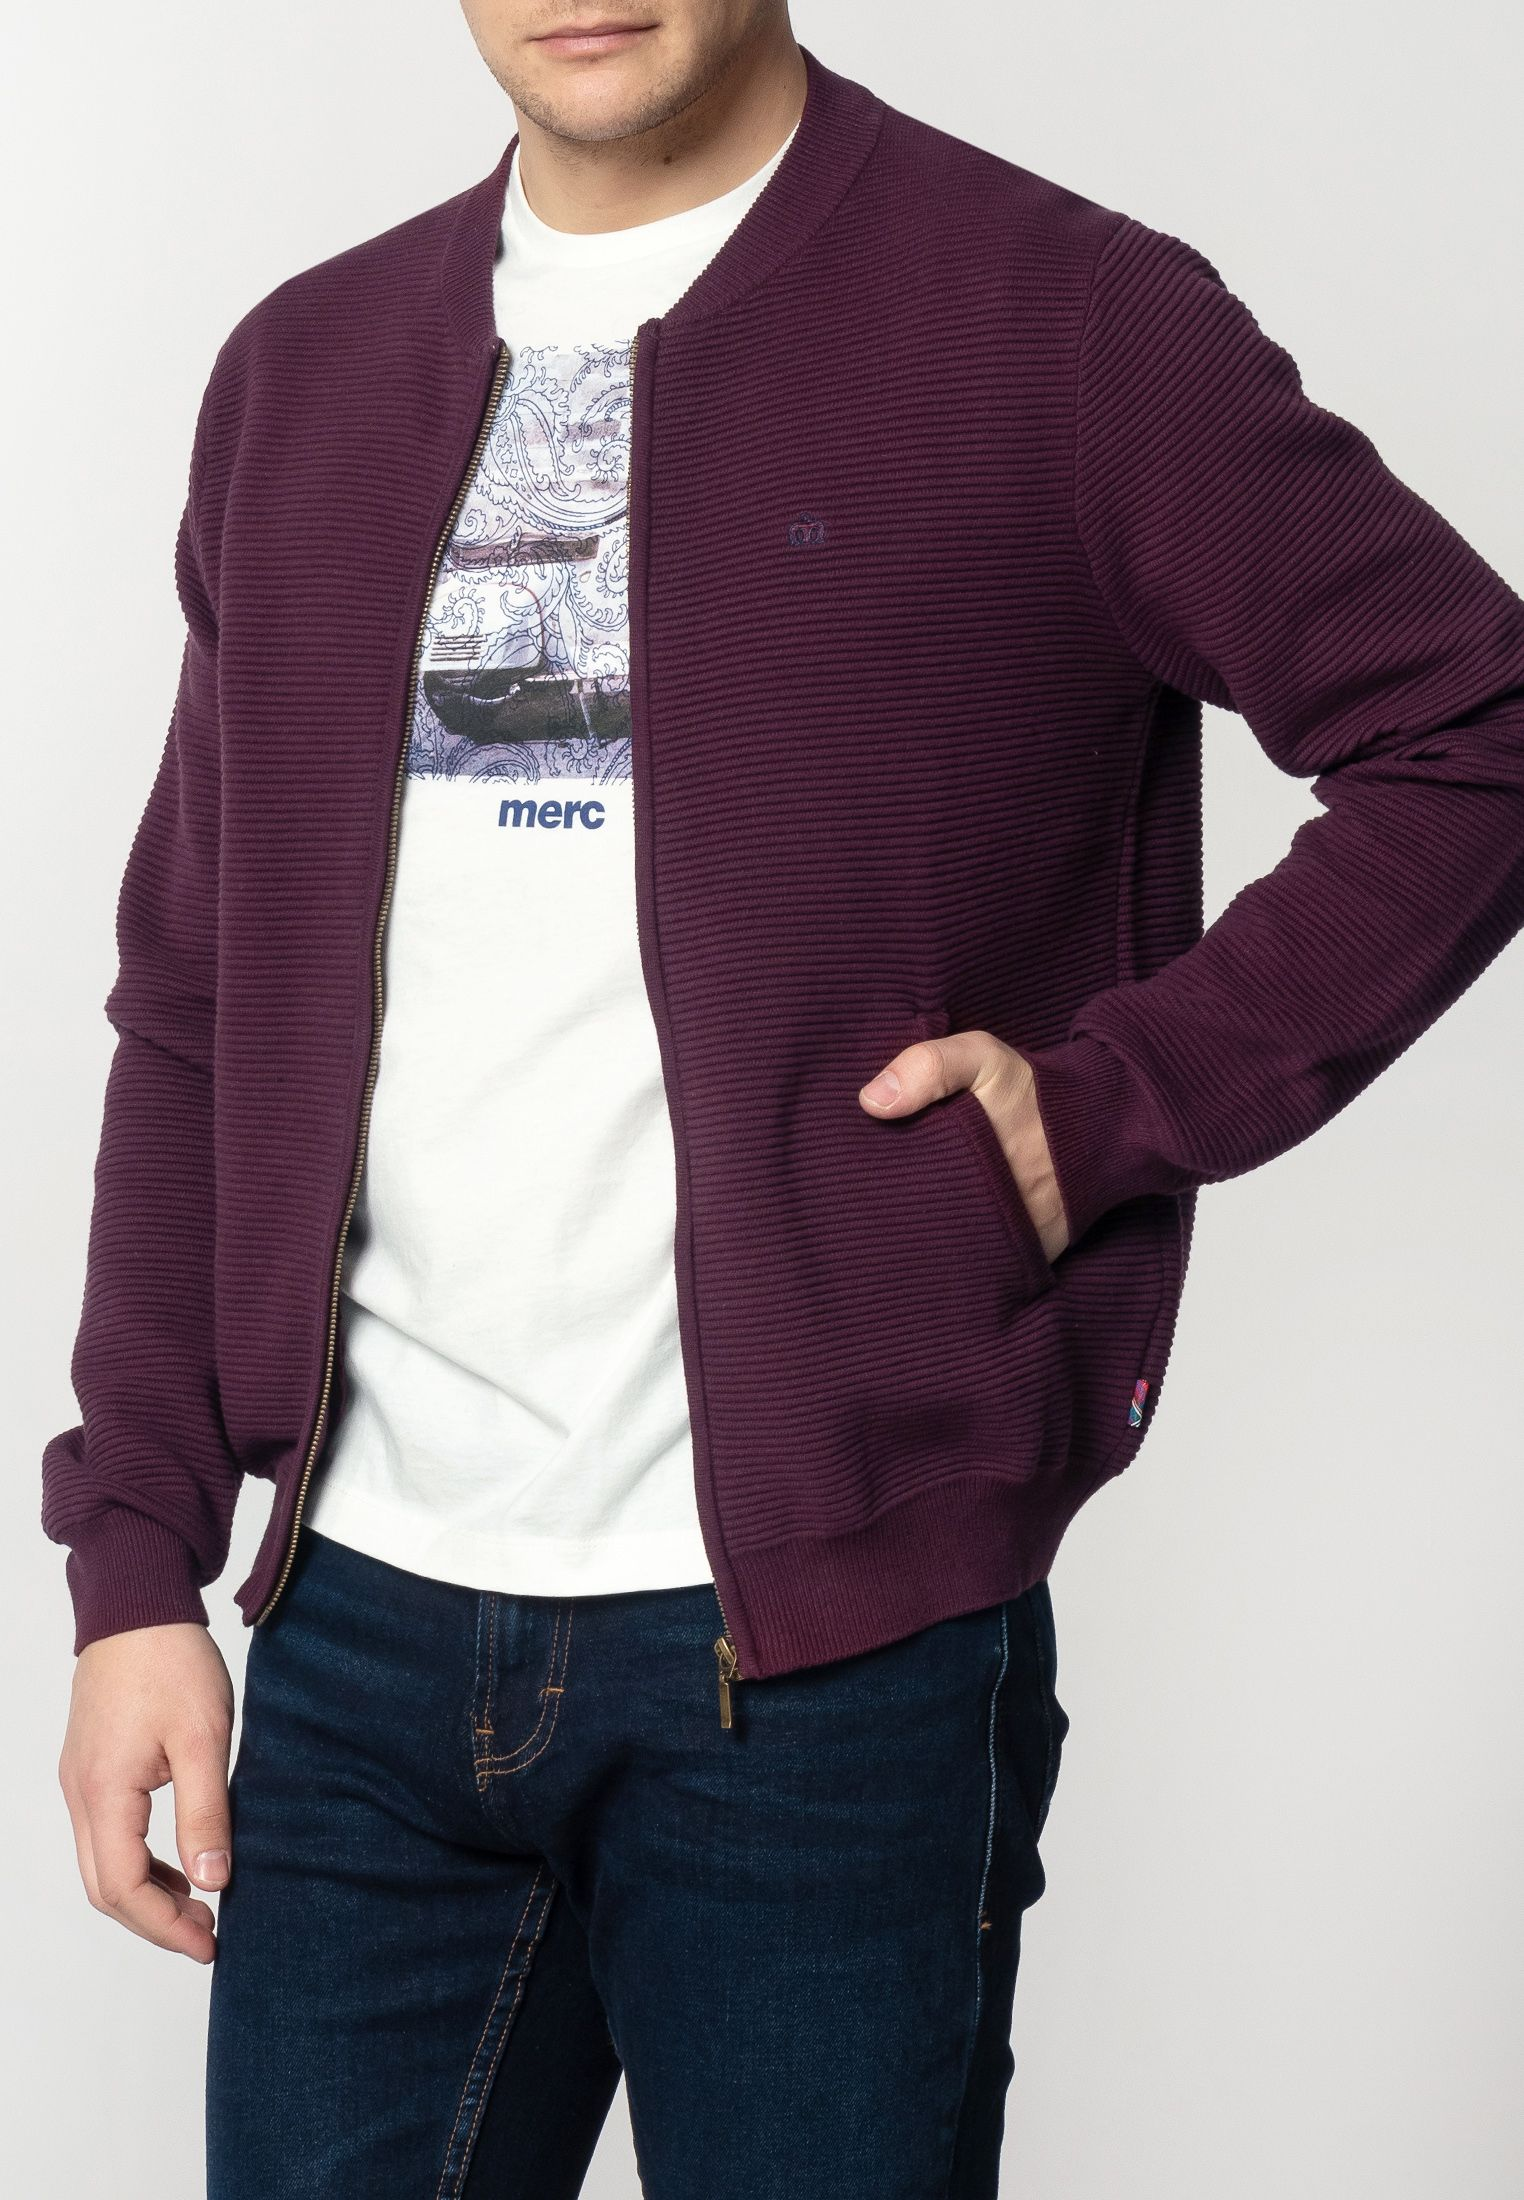 Booth Mens Chunky Cotton Cardigan With Ripple Detailing In Mahogany